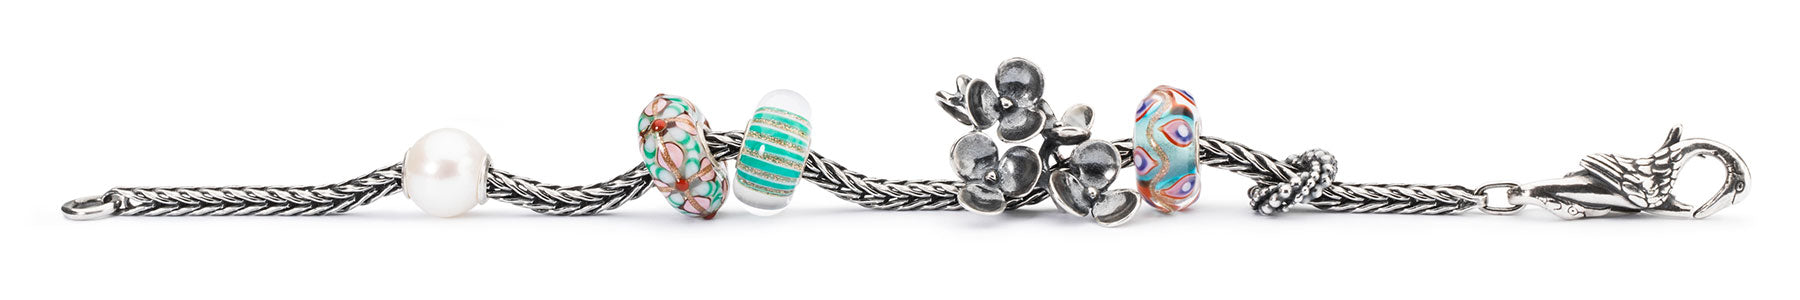 Trollbeads Enchanted Forest Spring 2018 Collection Bracelet